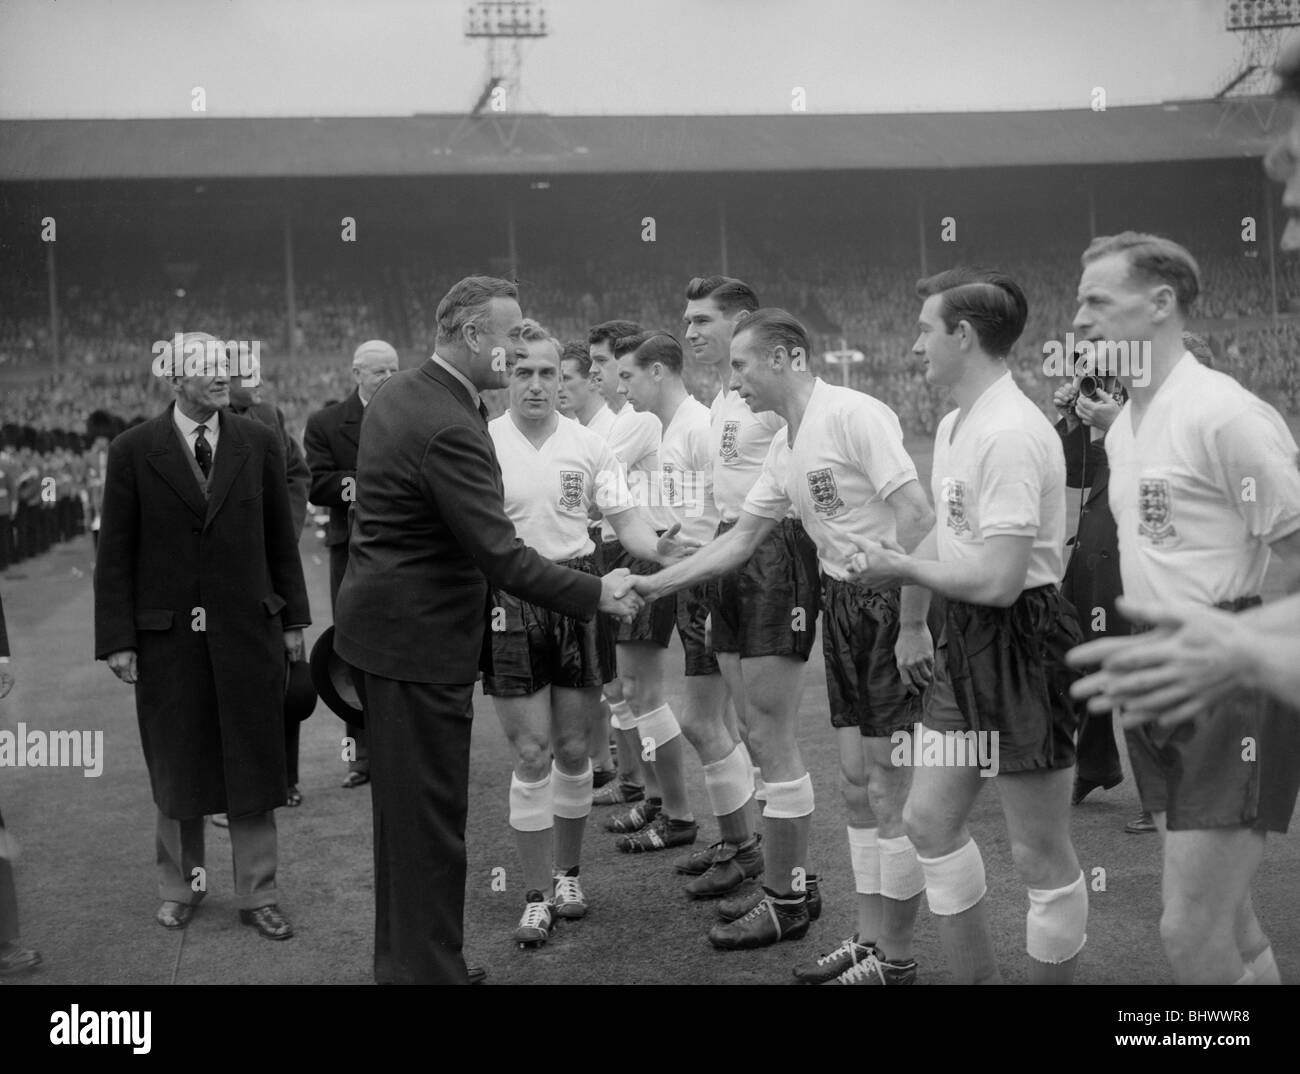 1958 World Cup Qualifying match at Wembley Stadium. England 5 v Republic of Ireland 1. Earl Mountbatten is introduced - Stock Image